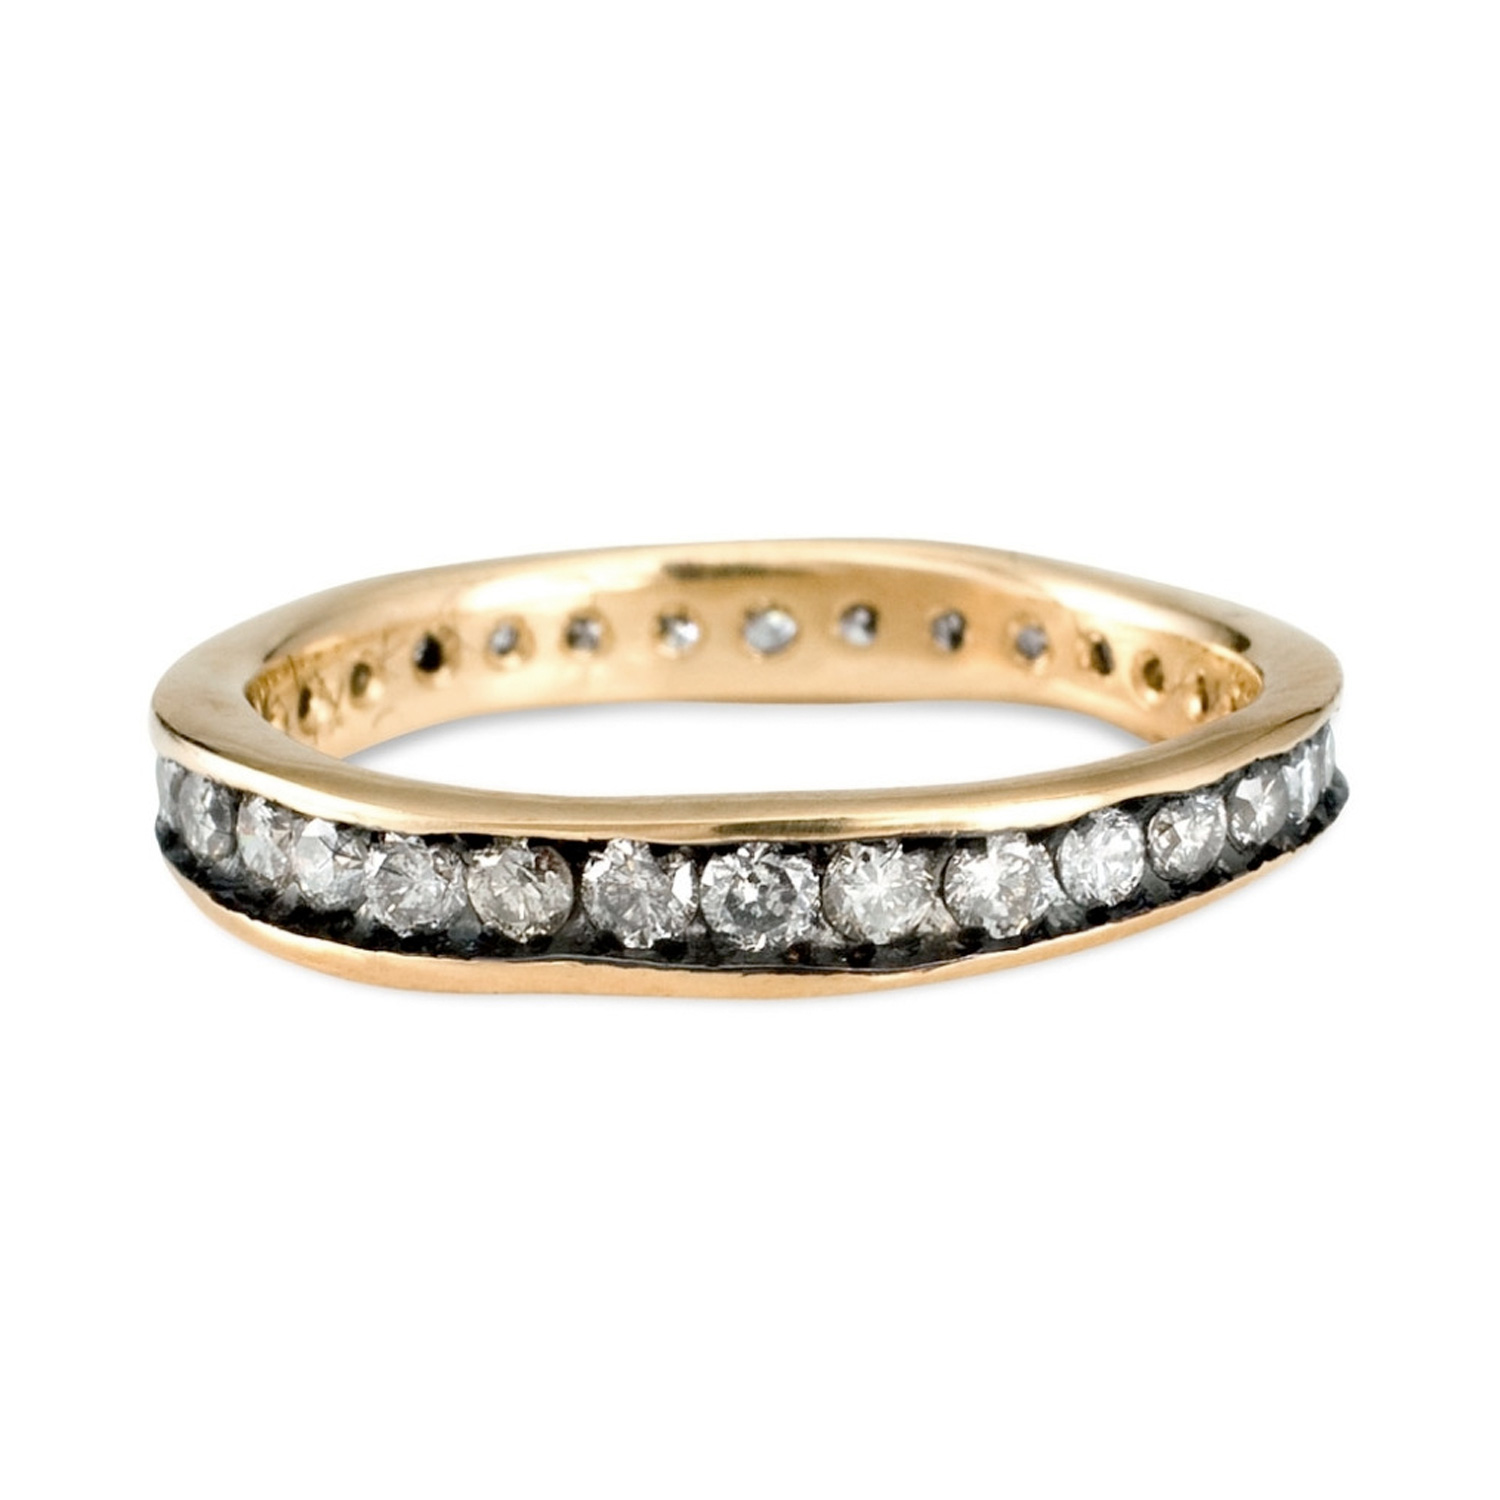 tw bands in wedding diamond eternity rose engagement gold ct rings band